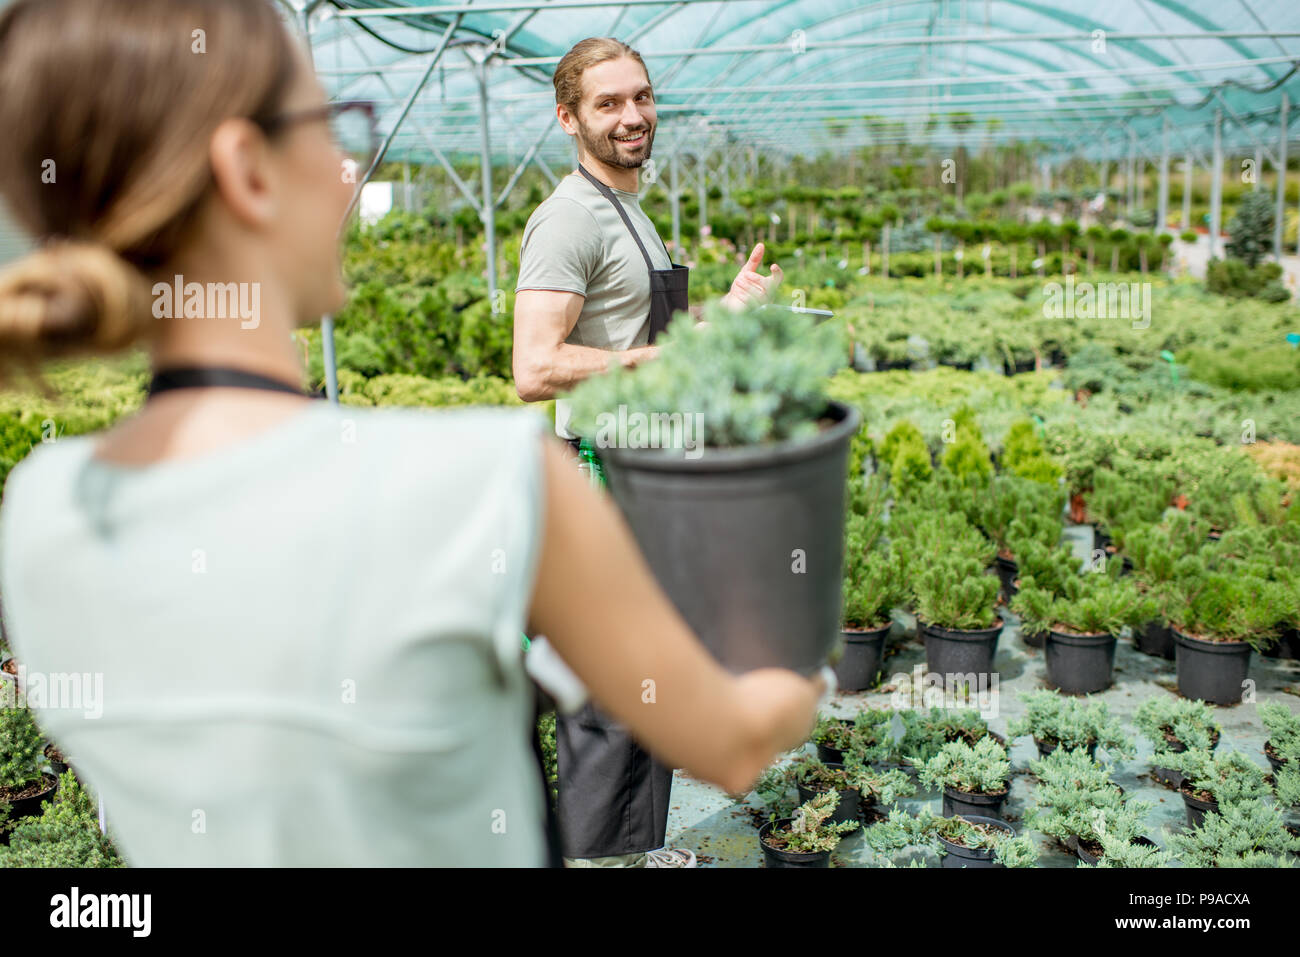 Workers supervising plants in the greenhouse - Stock Image